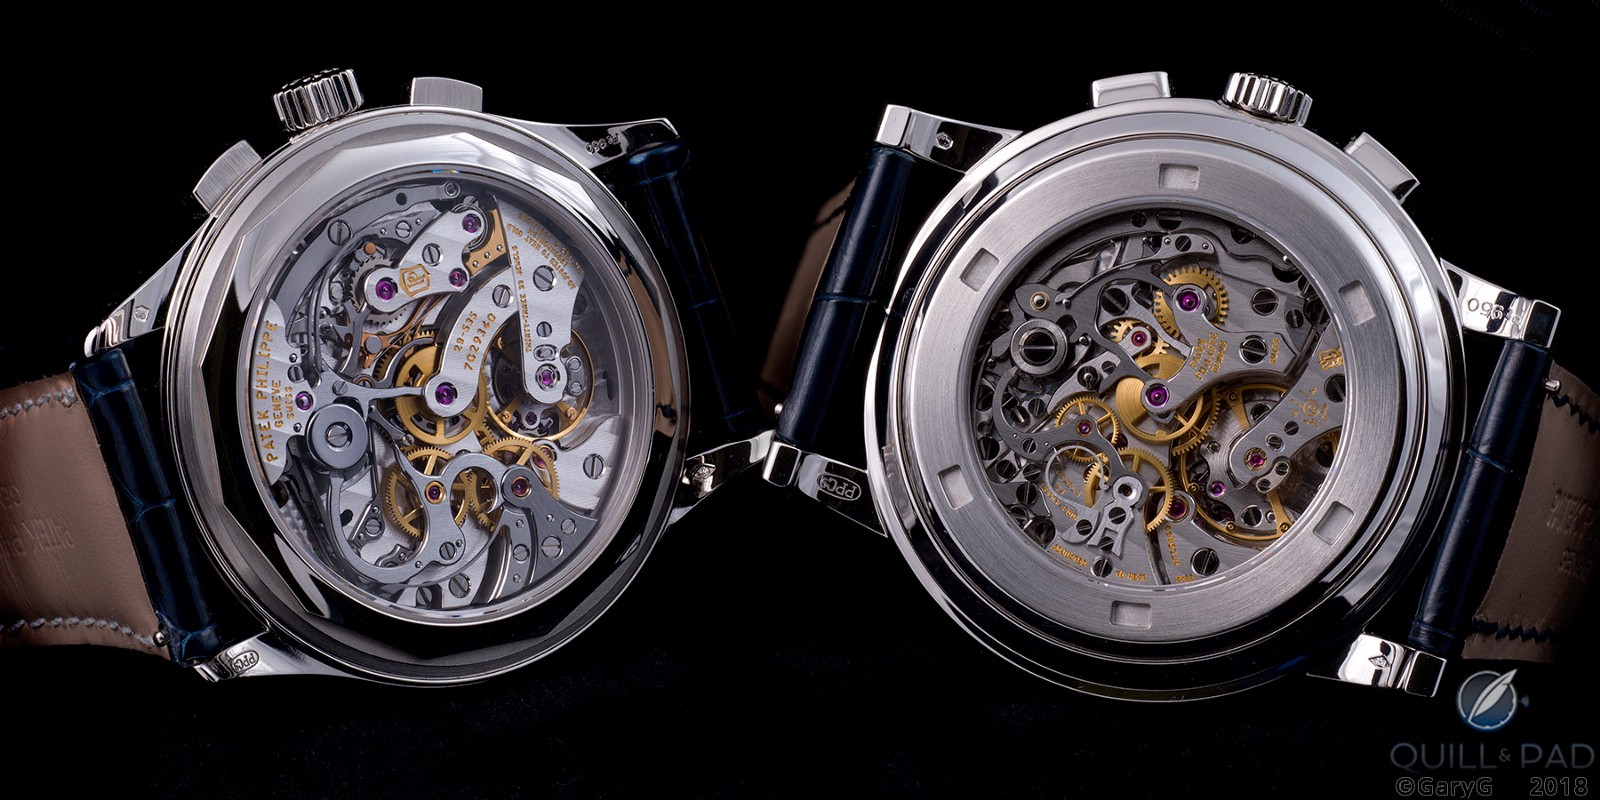 Movement views, Patek Philippe Reference 5170P (left) and Reference 5070P